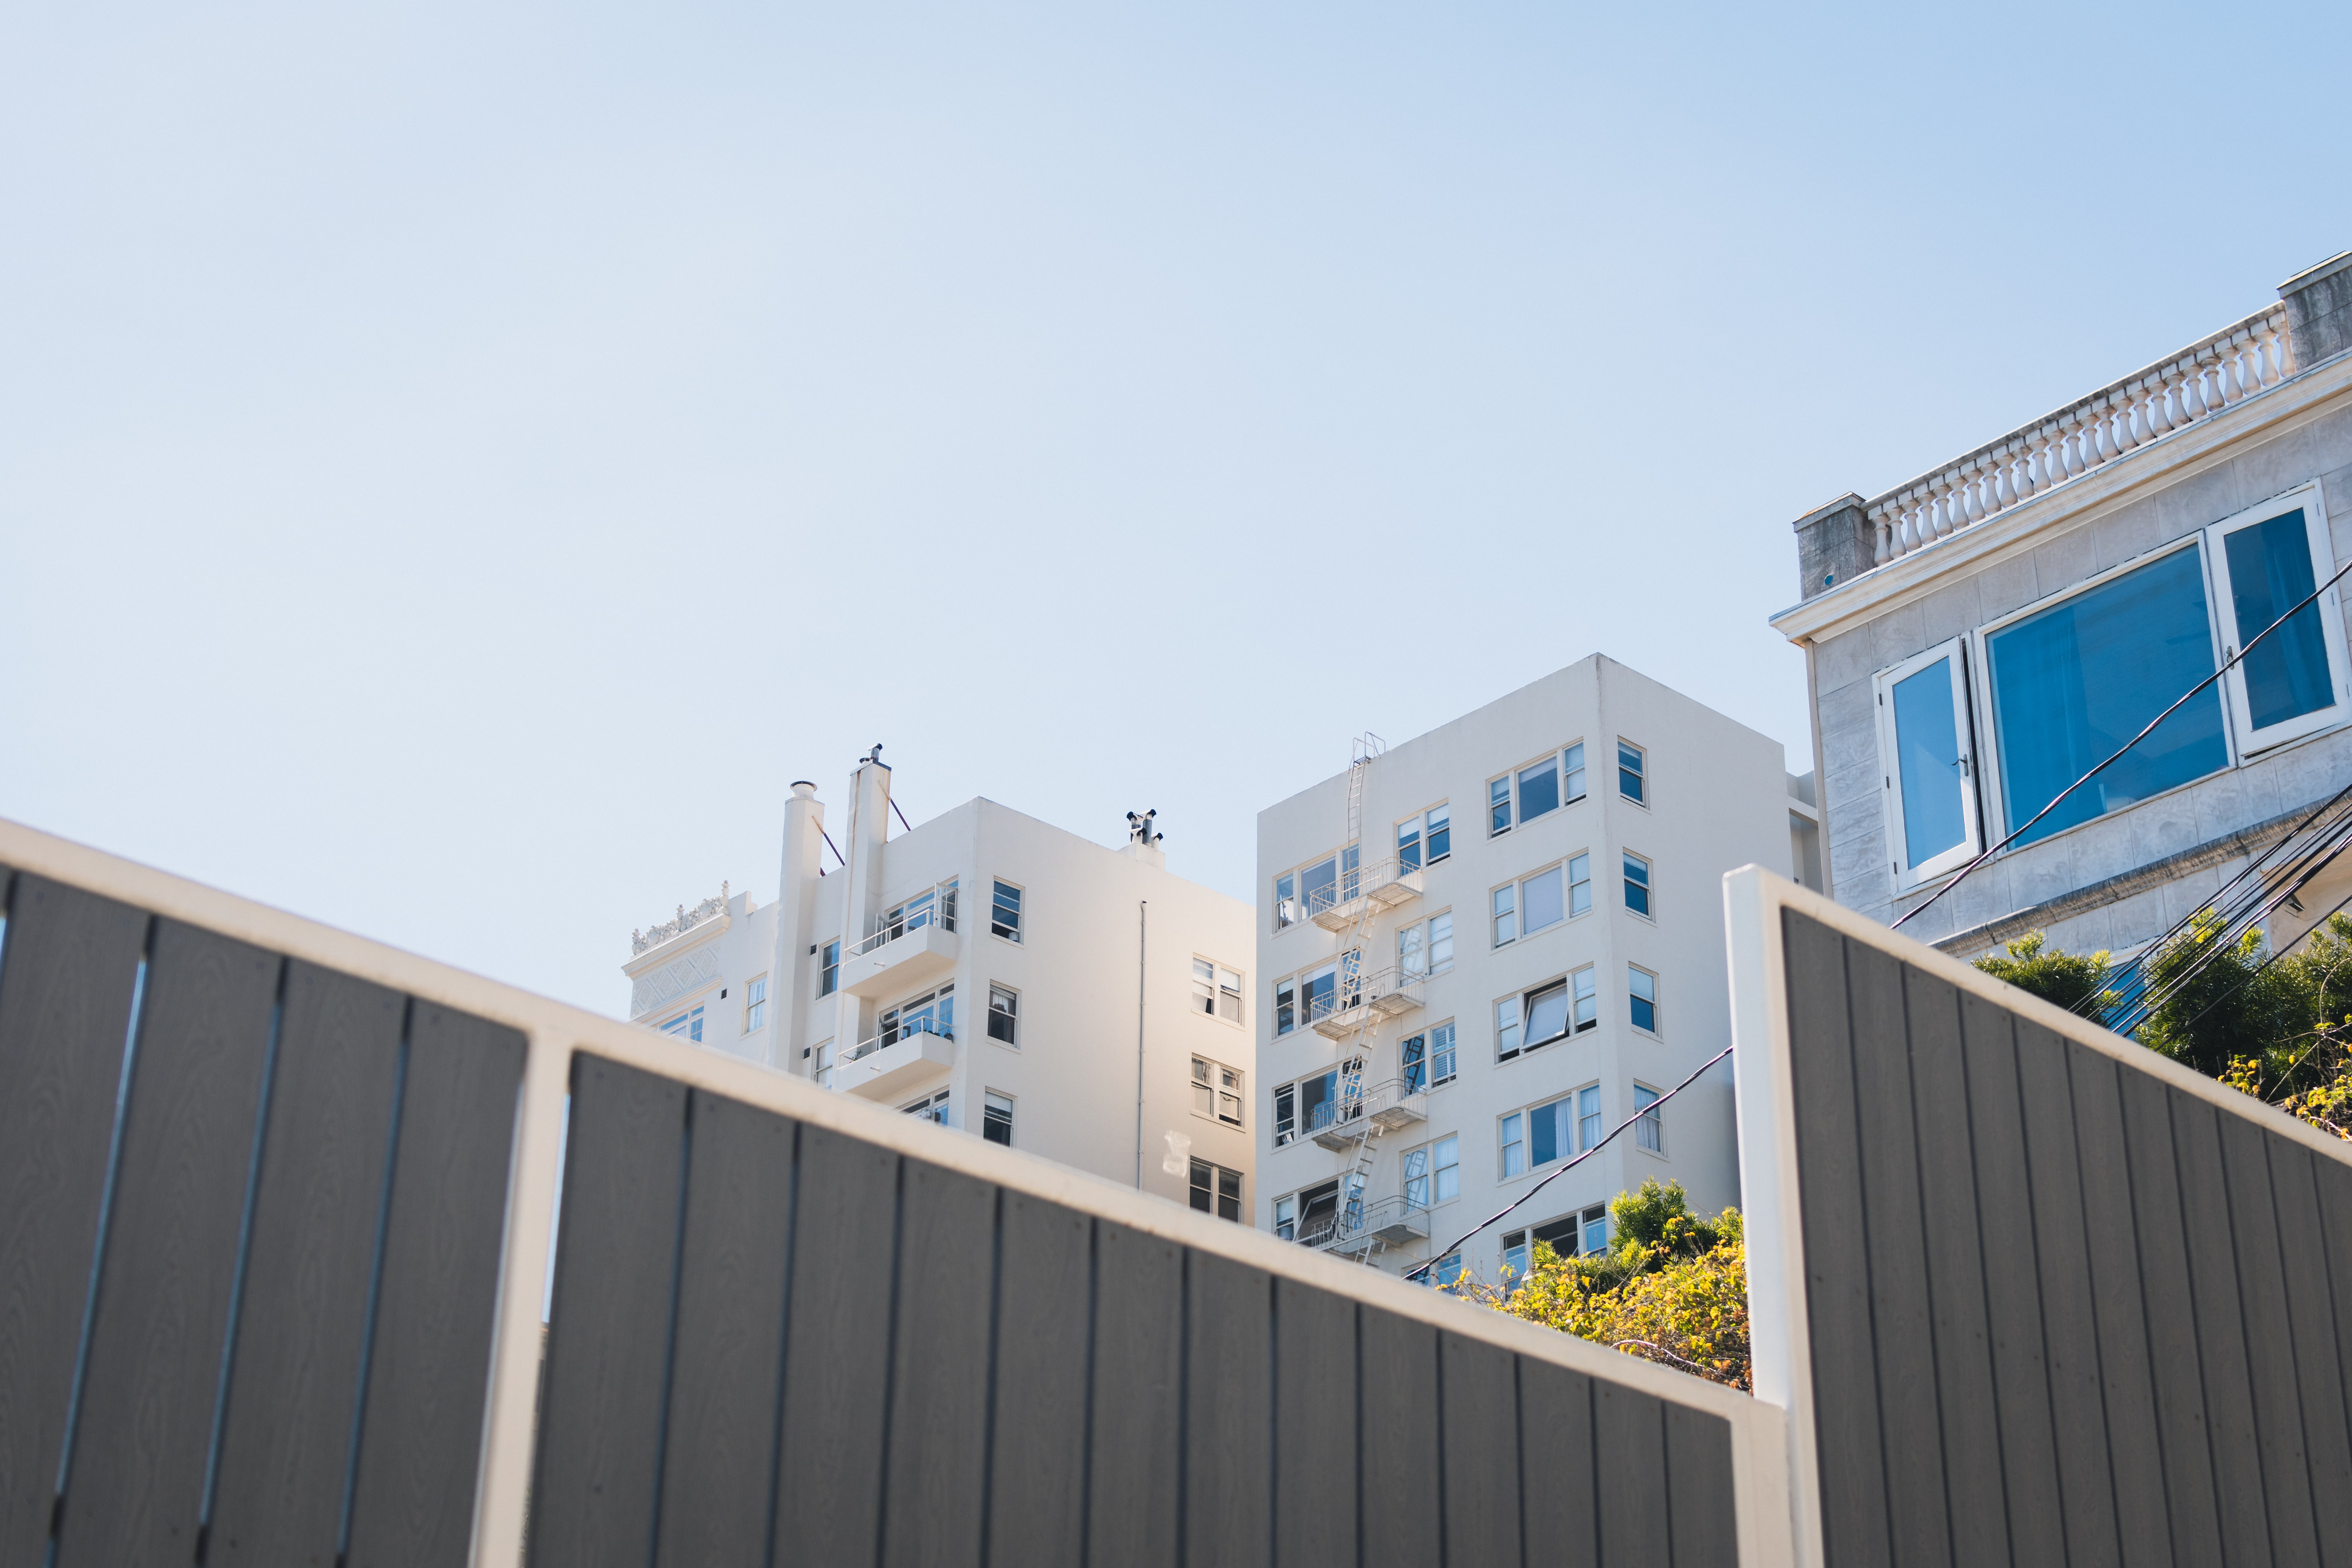 high-rise white concrete building under blue sky during daytime